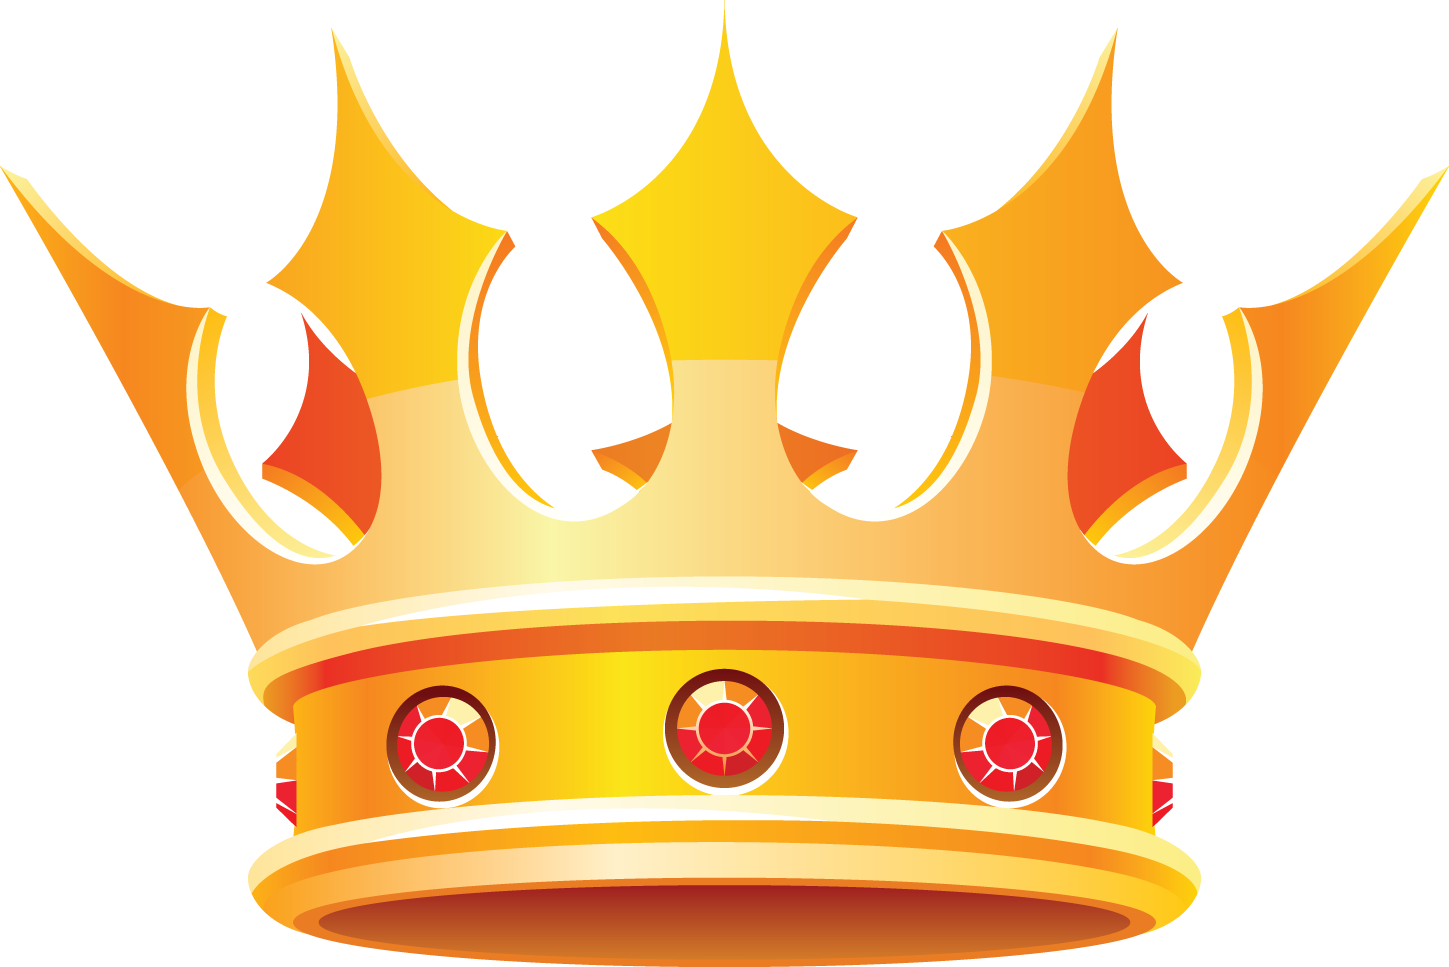 King crown clipart free graphic royalty free stock Queen Crown Clipart at GetDrawings.com | Free for personal use Queen ... graphic royalty free stock